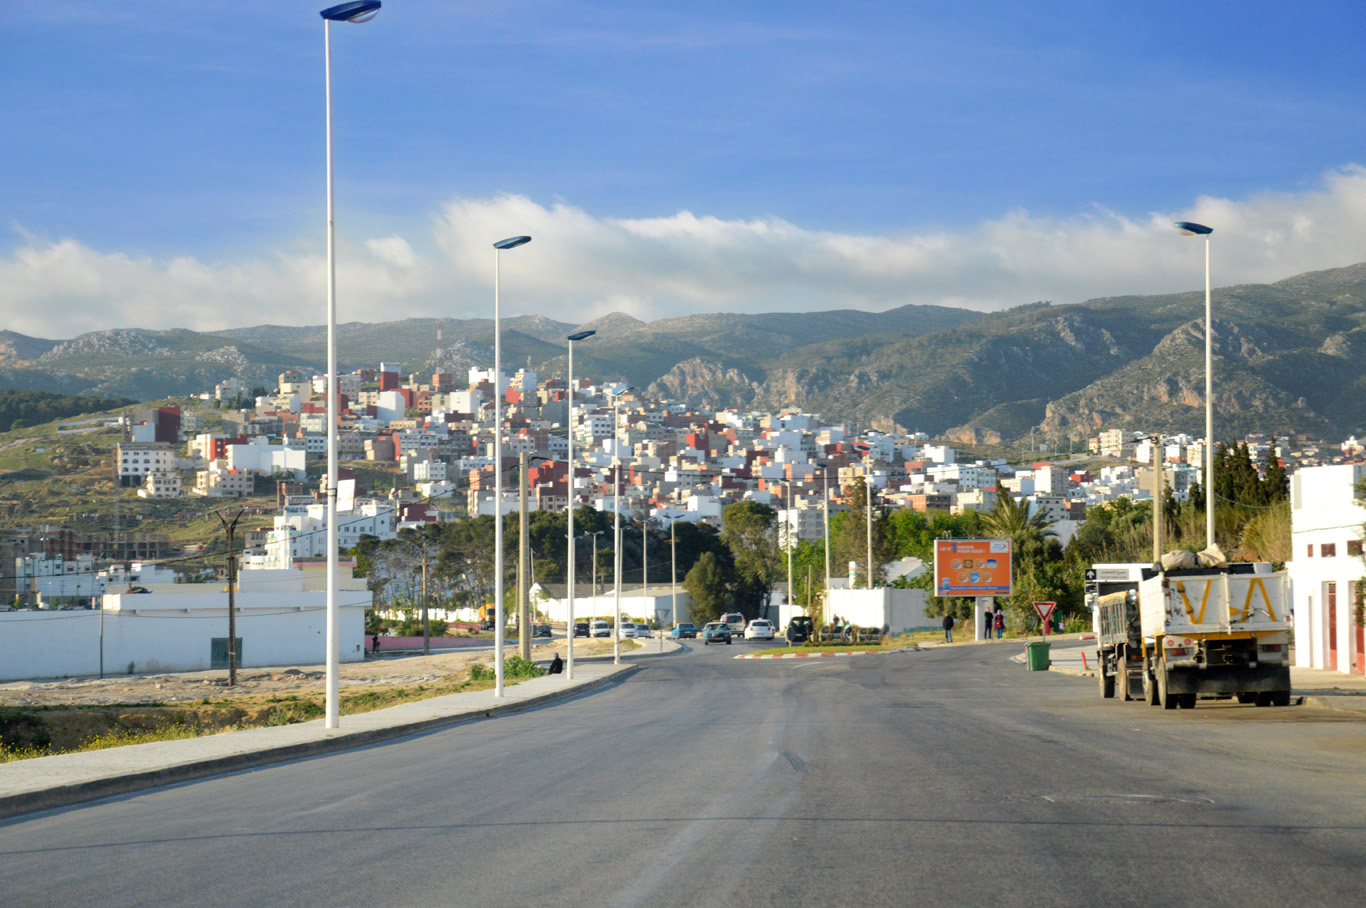 The city of Tetouan